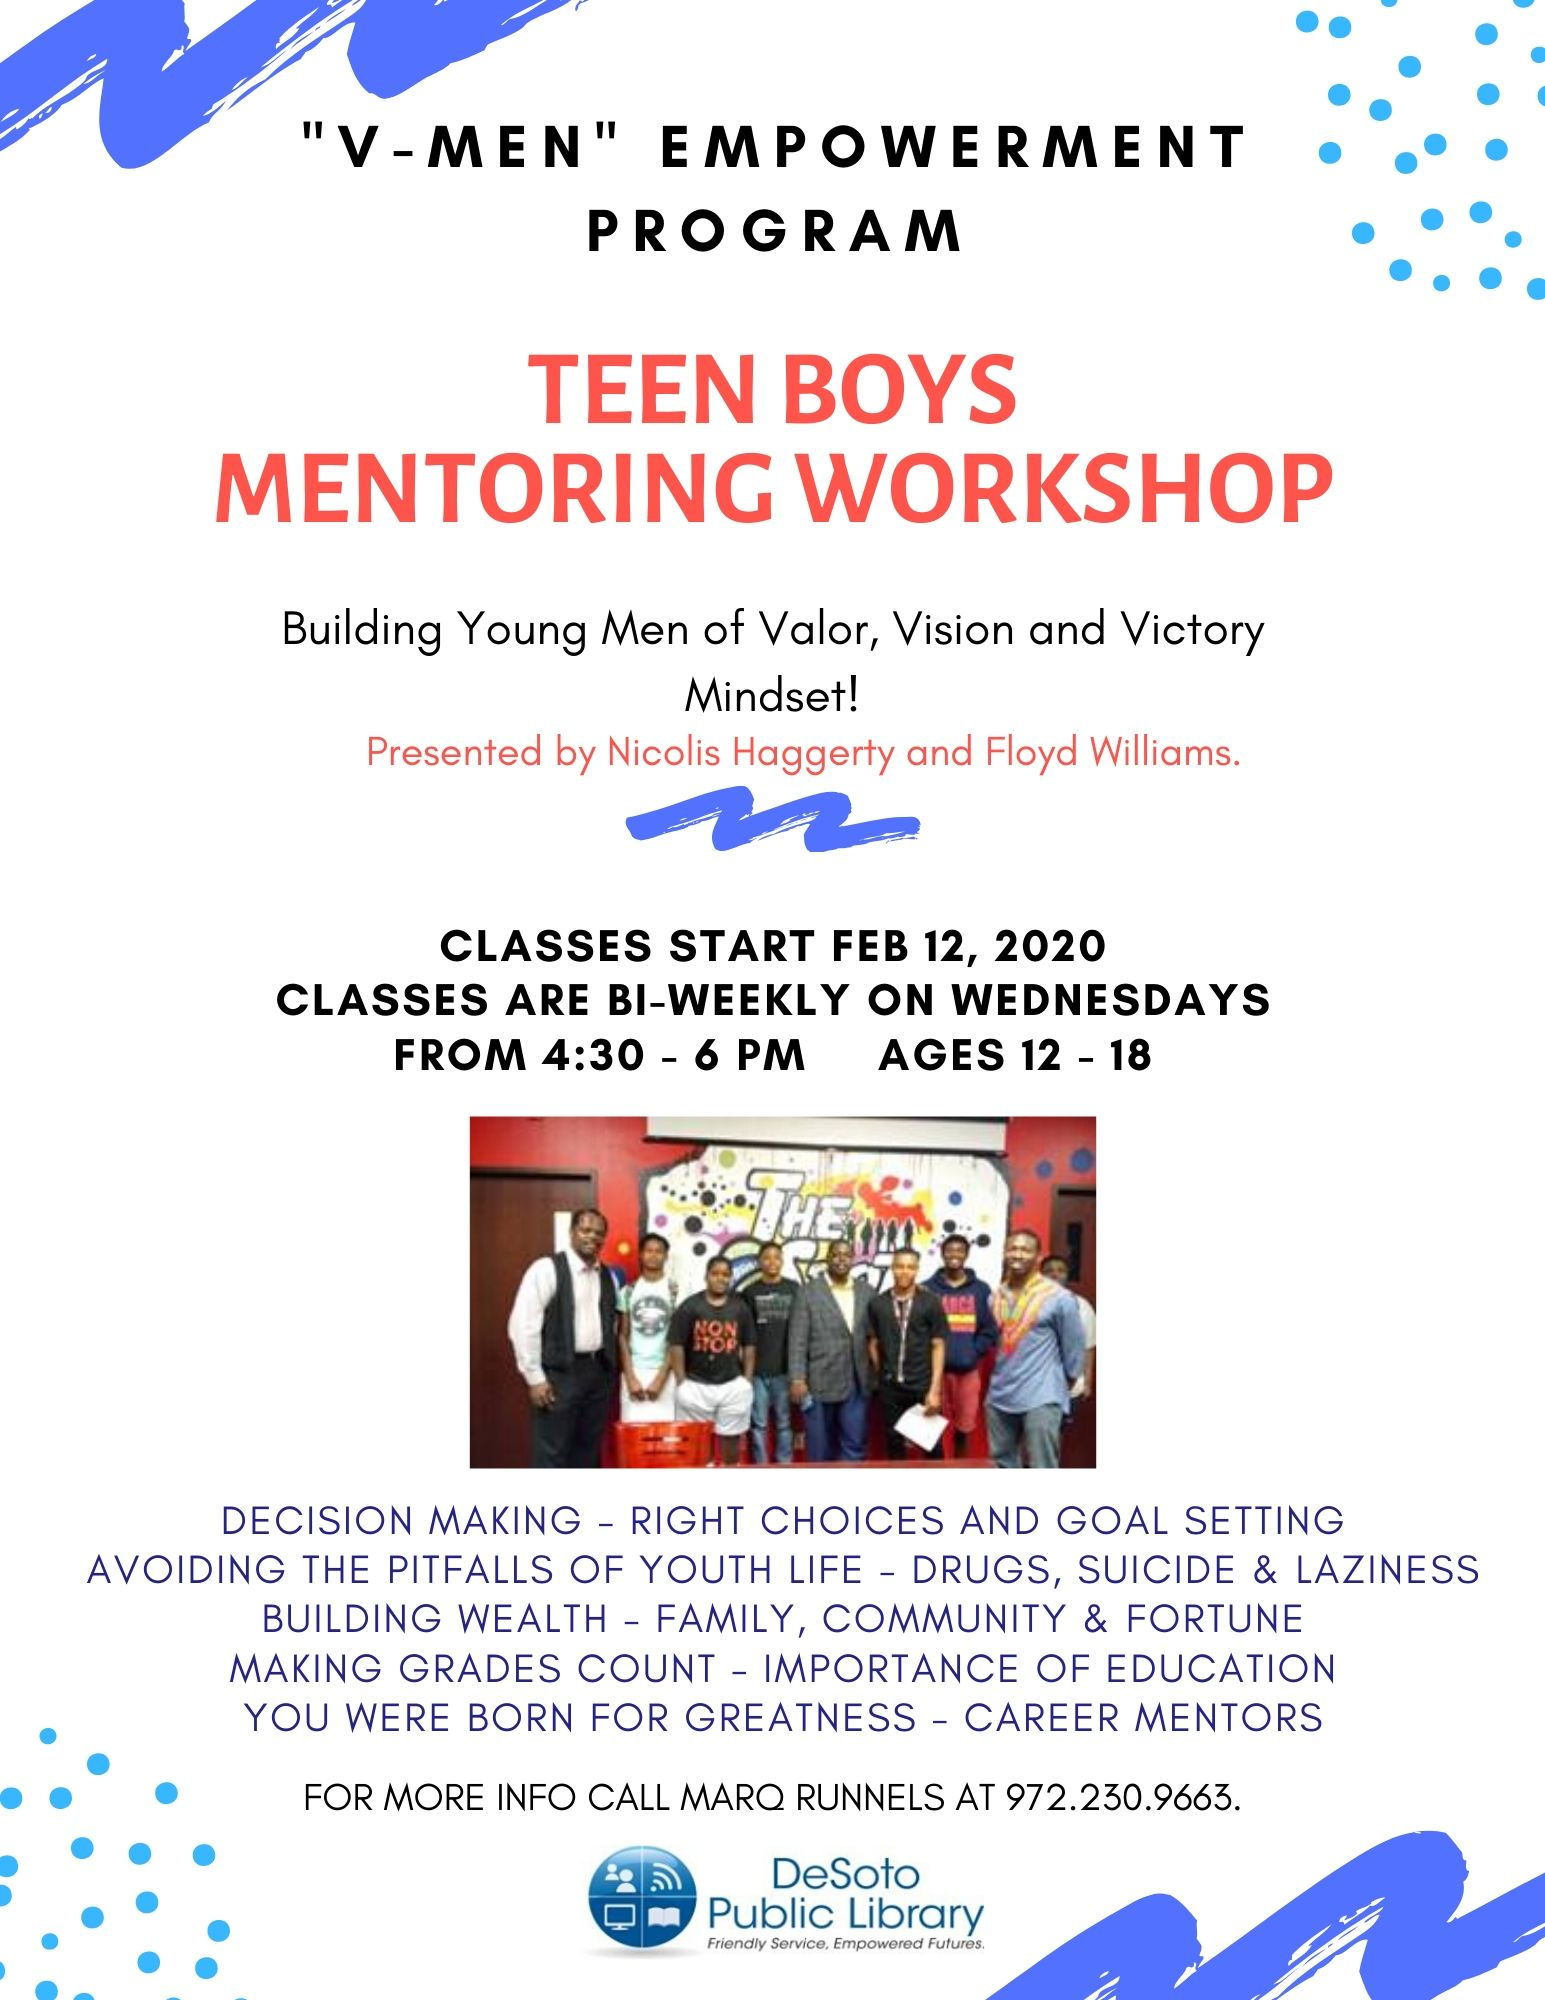 V-Men Teen Boys Mentoring Workshop Spring 2020 flyer